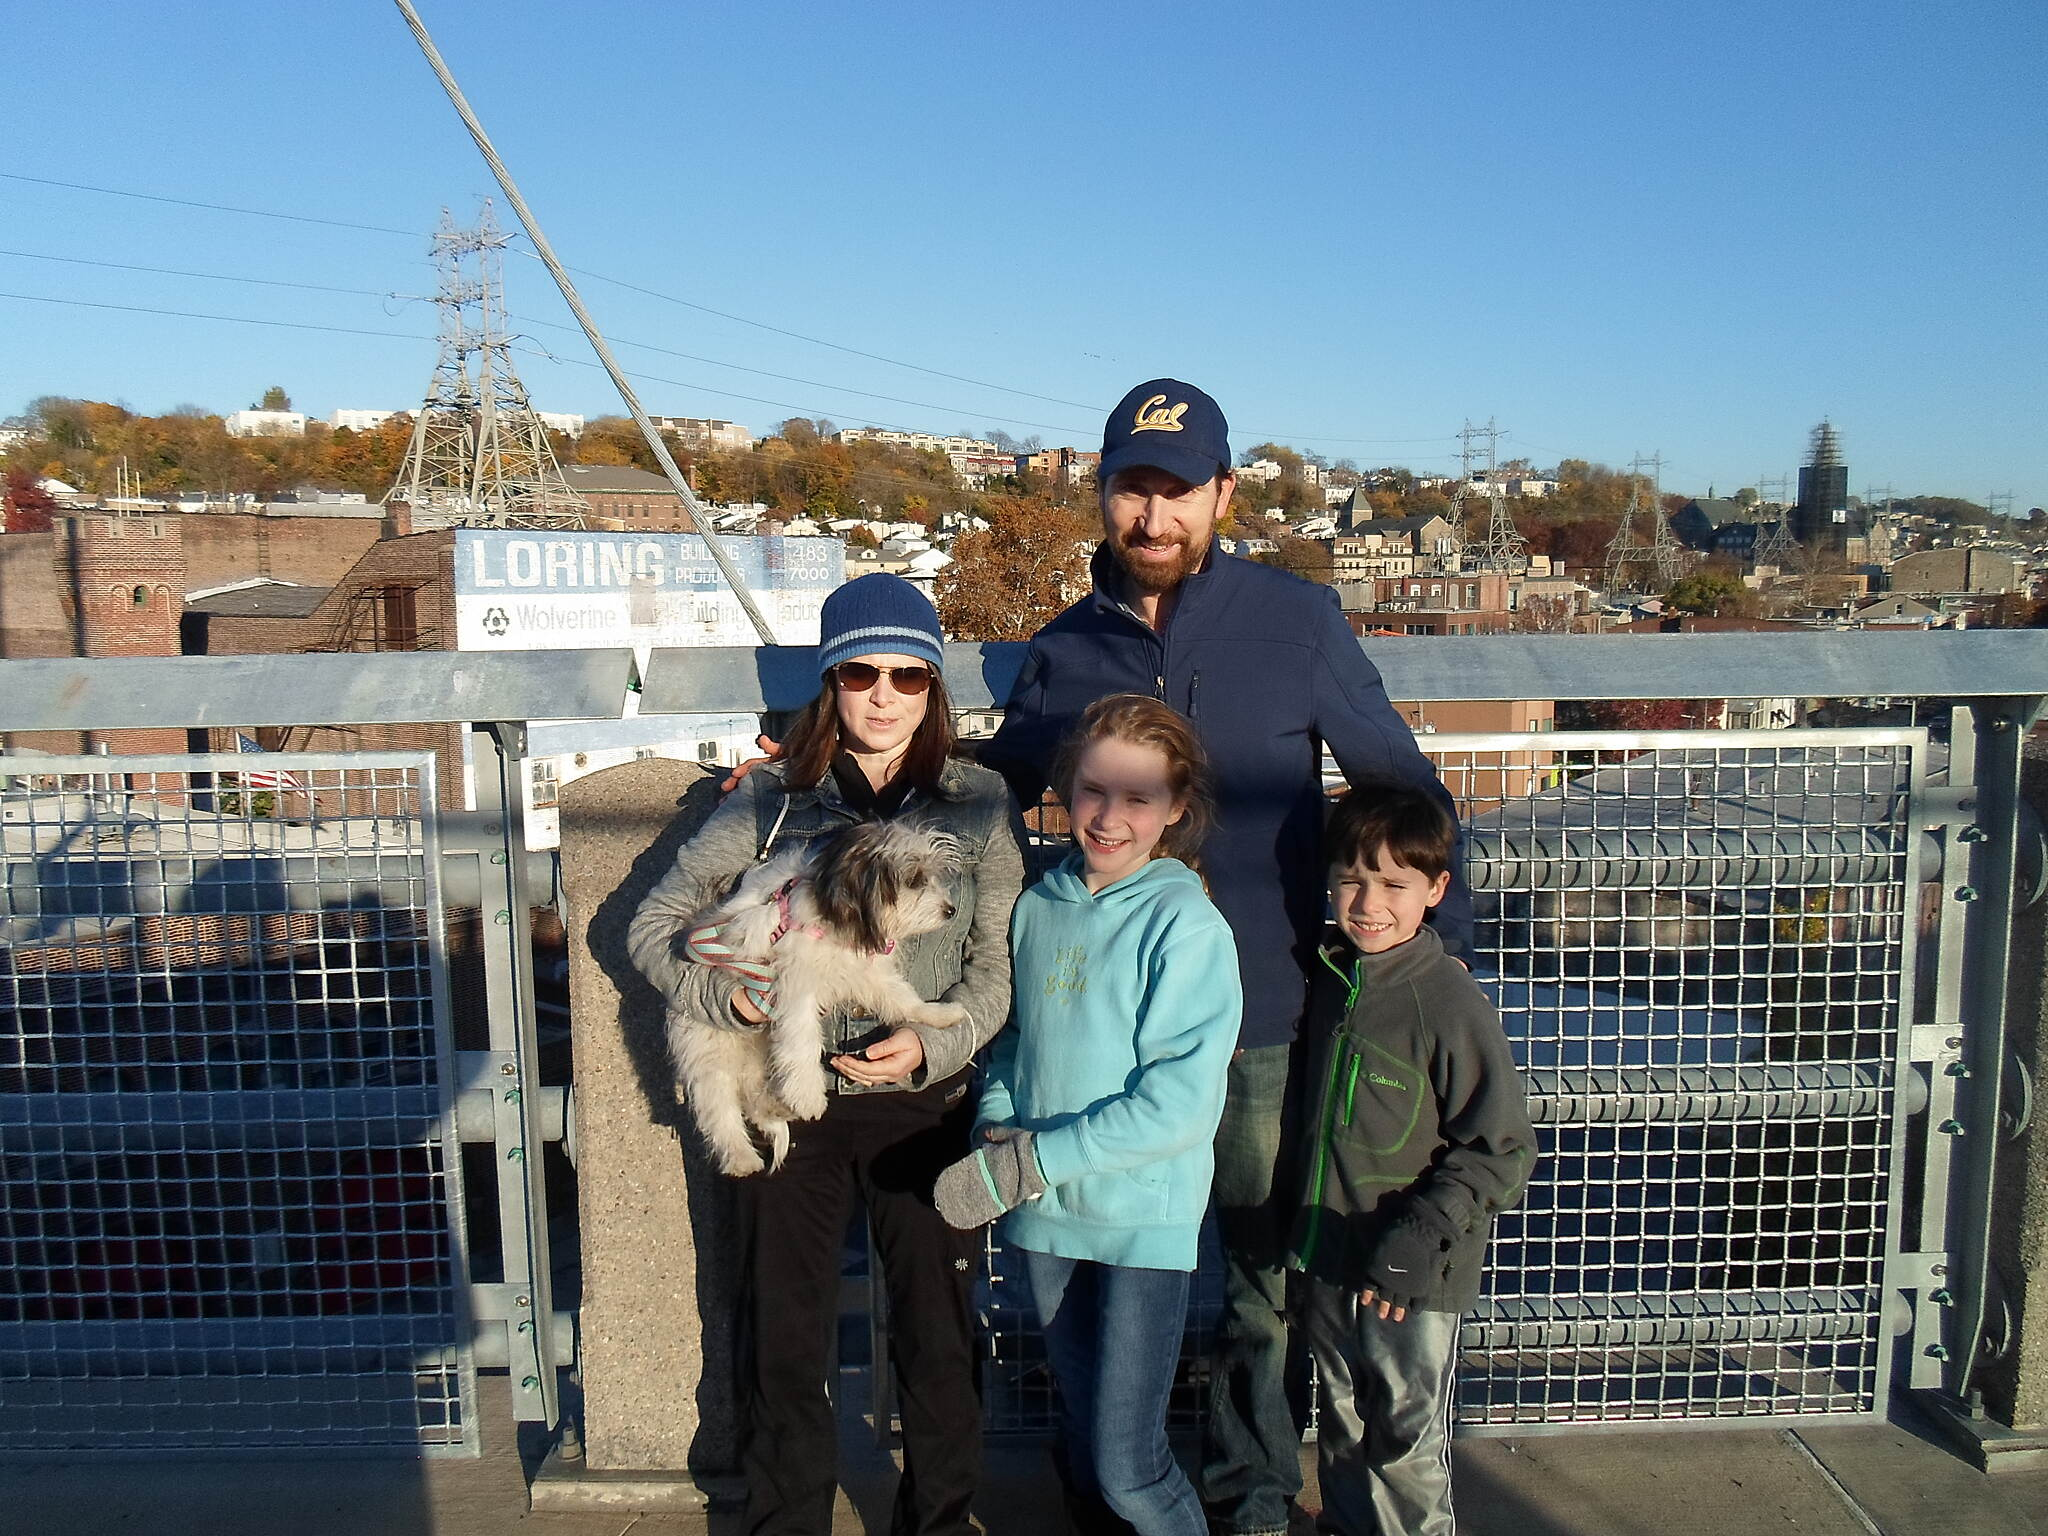 Cynwyd Heritage Trail Cynwyd Heritage Trail This family was enjoying an afternoon walk on the bridge. Manyunk can be seen in the background. Taken Nov. 2015.